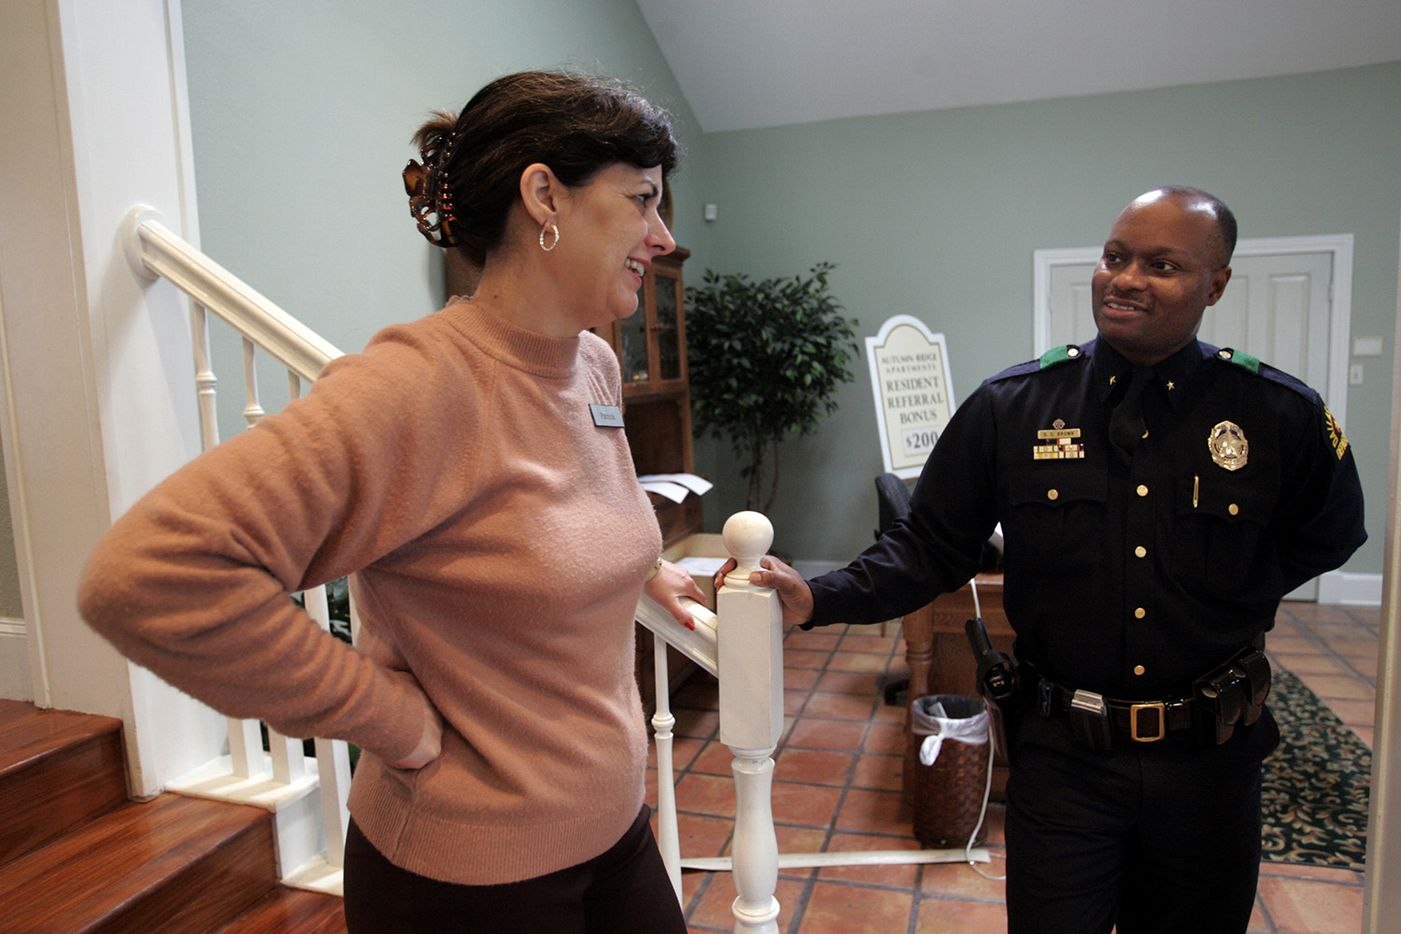 Autumn Ridge Apartment manager Patricia Bethencourt talks with DPD Deputy Chief David Brown about the decline in crime at her apartments.  Dallas Police Deputy Chief David Brown is leading a one-month initiative that stations dozens of officers in three of the the most crime-ridden apartment complexes.  The three apartment complexes located in far northeast Dallas are Autumn Ridge Apartments, Bent Creek Apartments , and Providence Apartment Homes. So far, the initiative has netted 47 felony arrest, 151 total arrests and 583 citations since December 13, 2004. Police hope that after they leave his month, residents at these apartments will be more likely to report crime and set-up crime watch meetings.